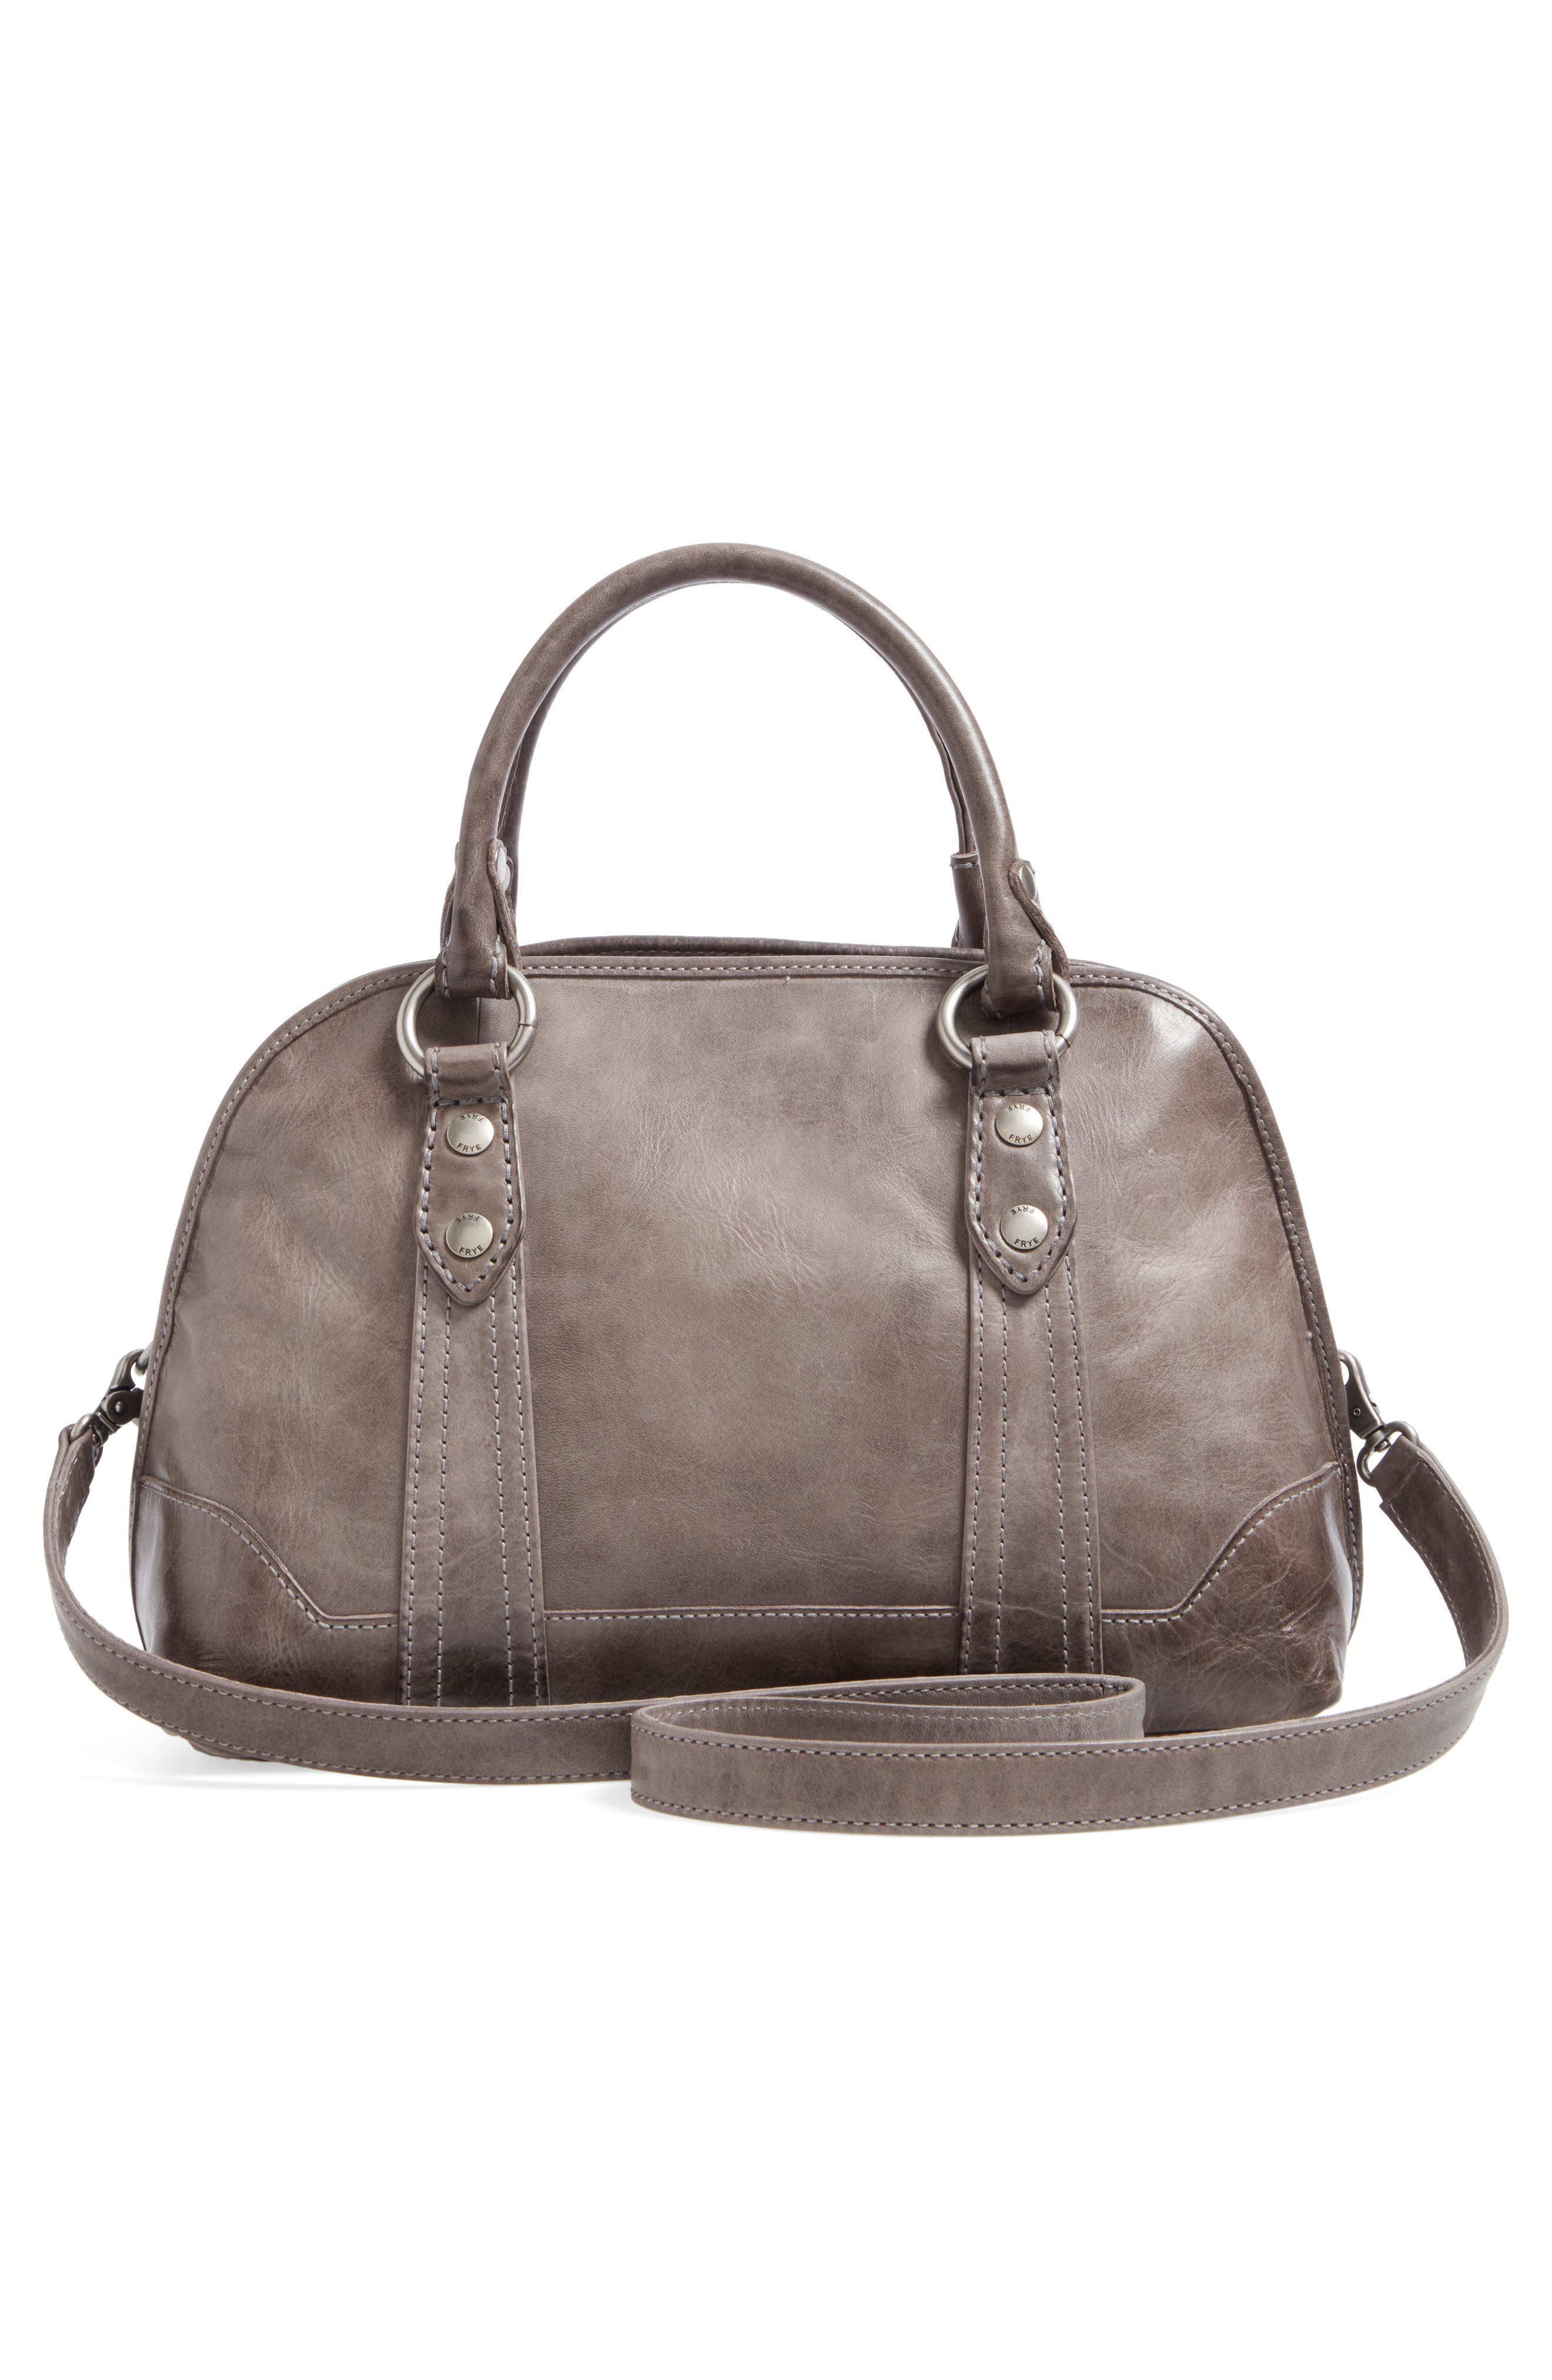 'Melissa' Domed Leather Satchel,                             Alternate thumbnail 2, color,                             Ice